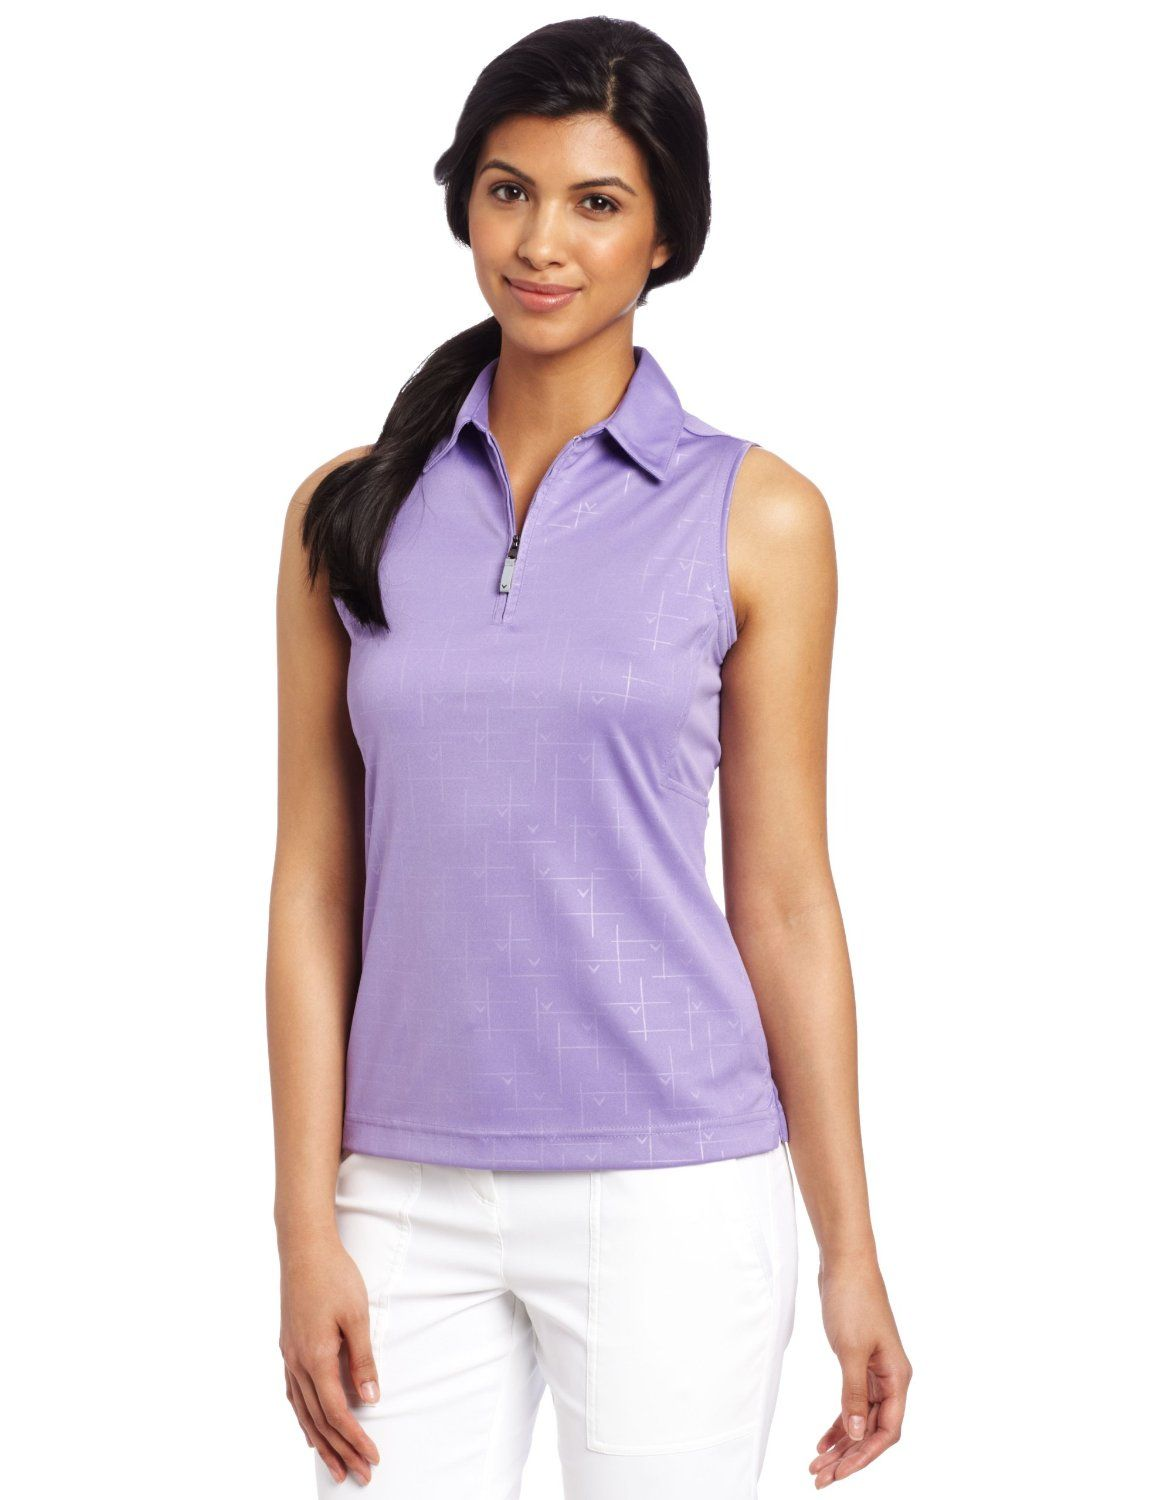 This Shrink Resistant Womens Sleeveless Core Golf Polo Shirt By